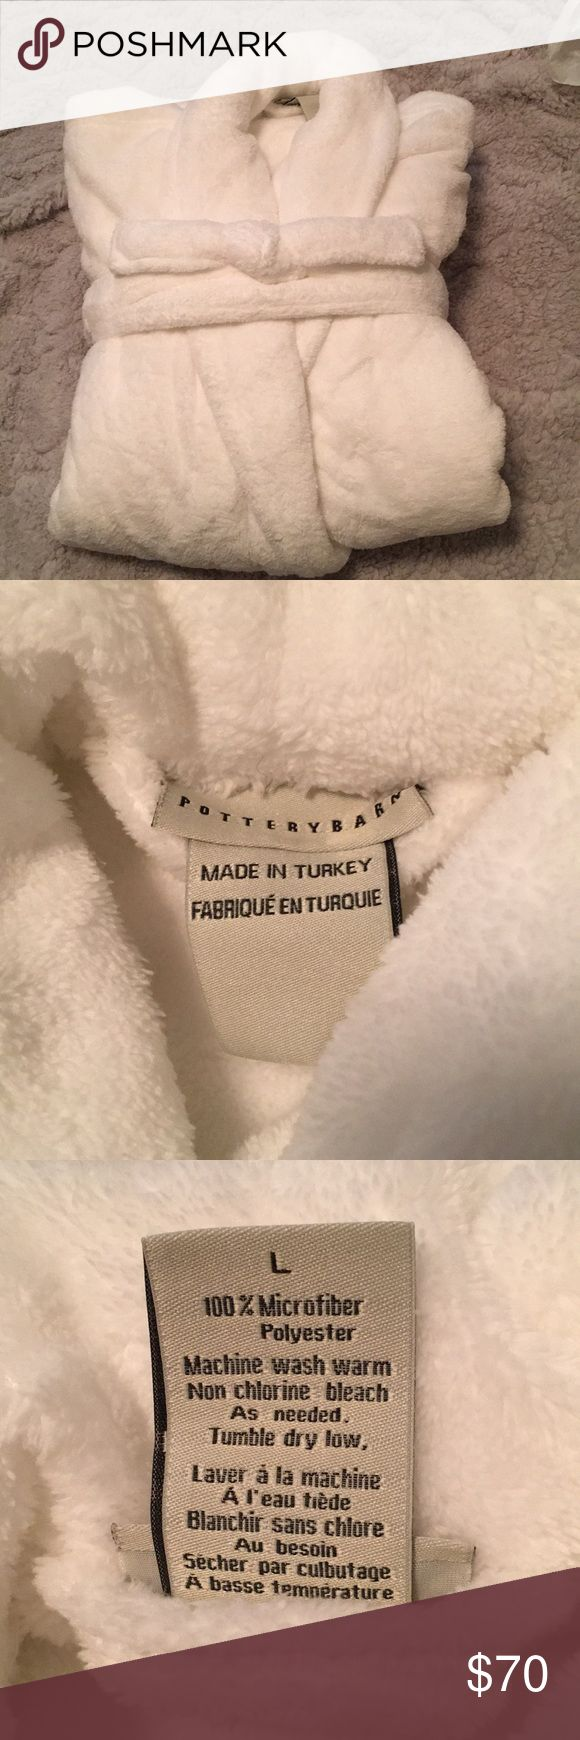 Pottery Barn robe Brand new and unused. Have two available. Size large. 100% microfiber plush robes. No trades. Bundle for discount. Please use offer feature. Pottery Barn Intimates & Sleepwear Robes